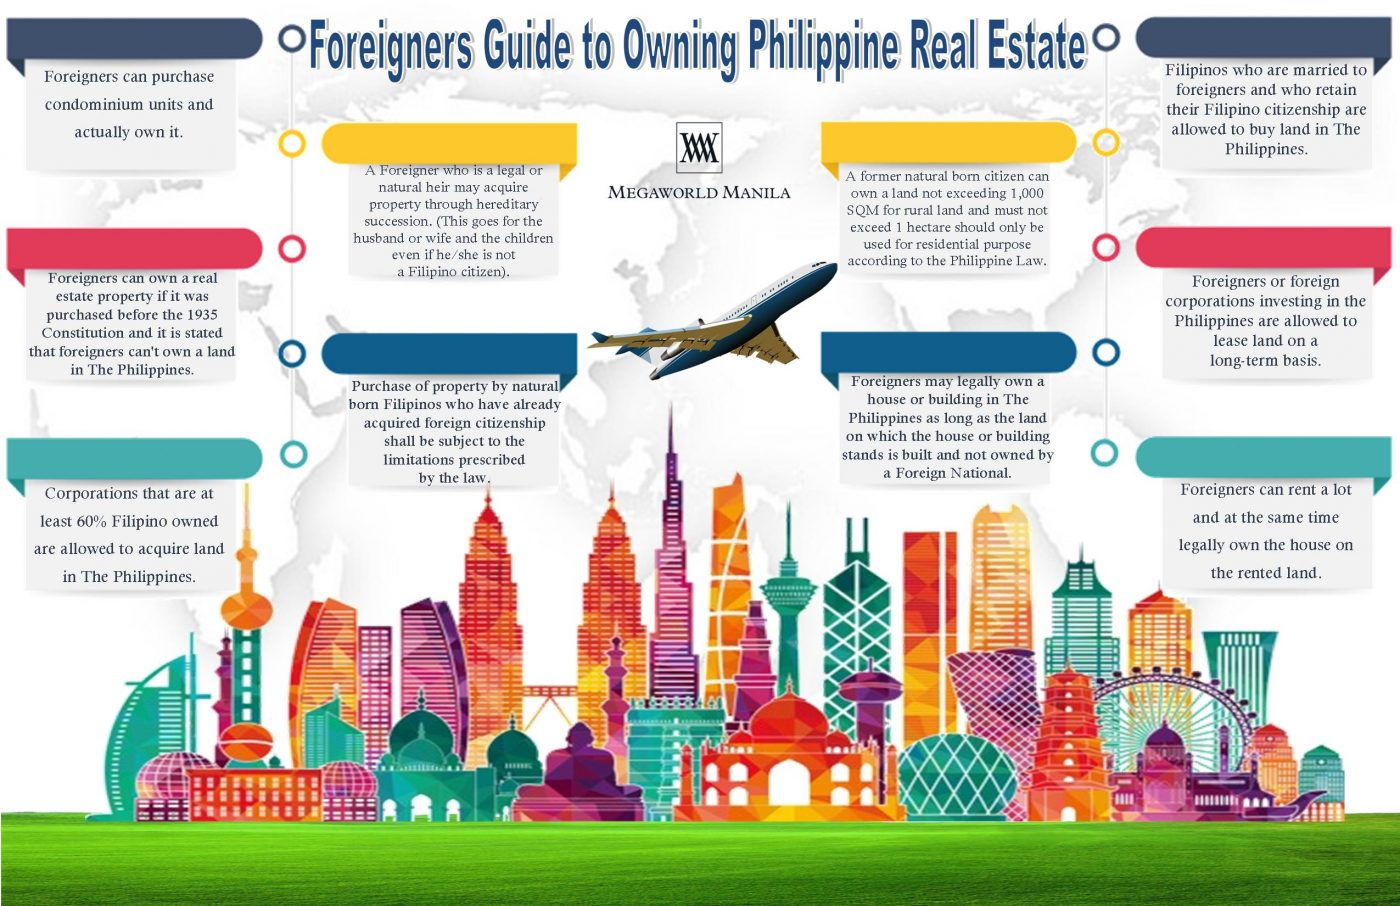 foreigners guide to owning real estate in the philippines